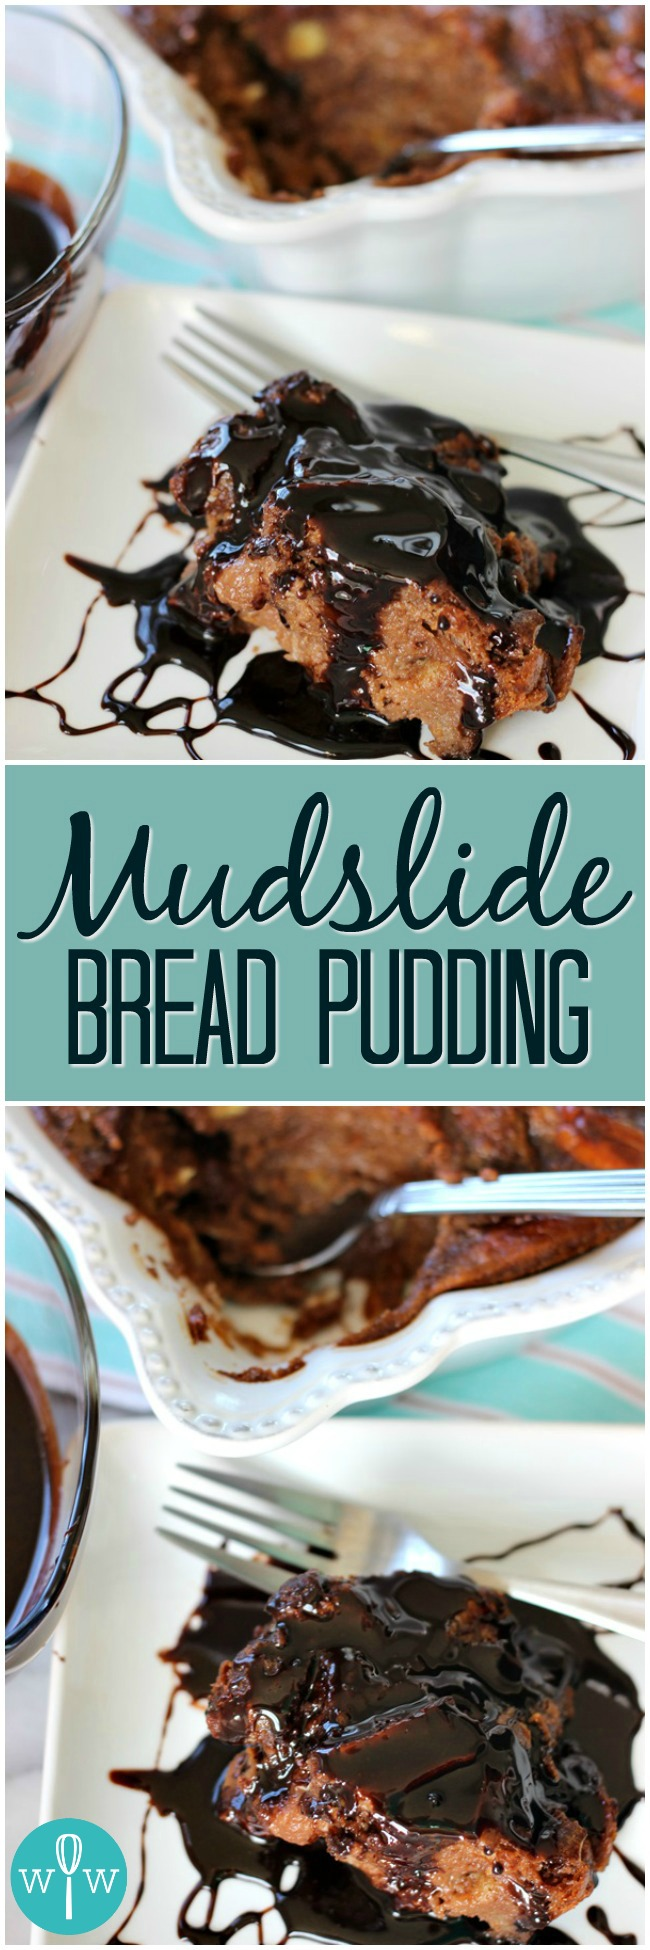 Mudslide Bread Pudding - A moist and dreamy bread pudding infused with chocolate, Kahlua, and Bailey's Irish Cream. | www.worthwhisking.com